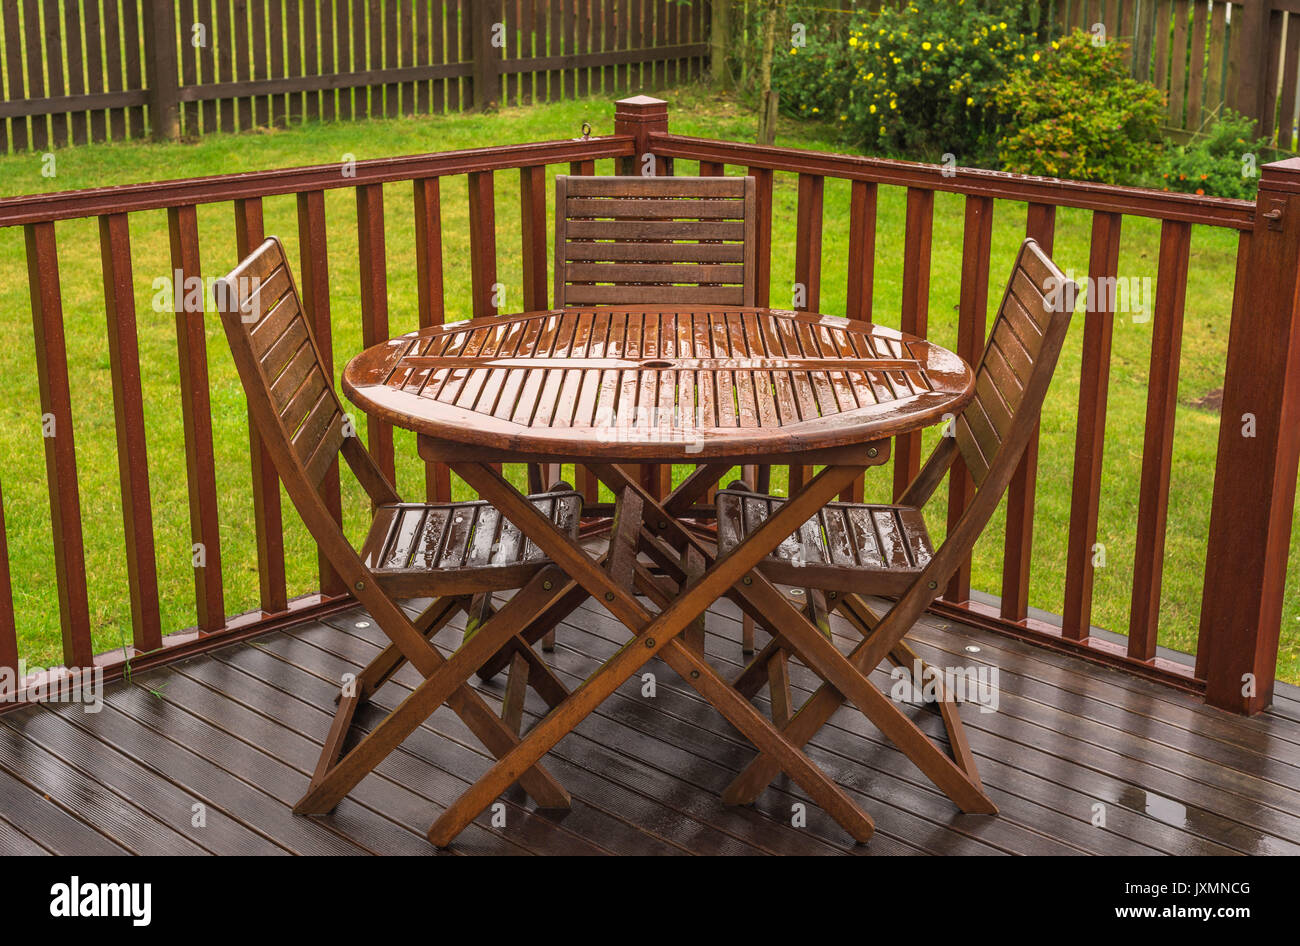 Summer Table And Chairs Part - 42: Rain Soaked Garden Table U0026 Chairs On A Wet Day In The UK When Summer Is